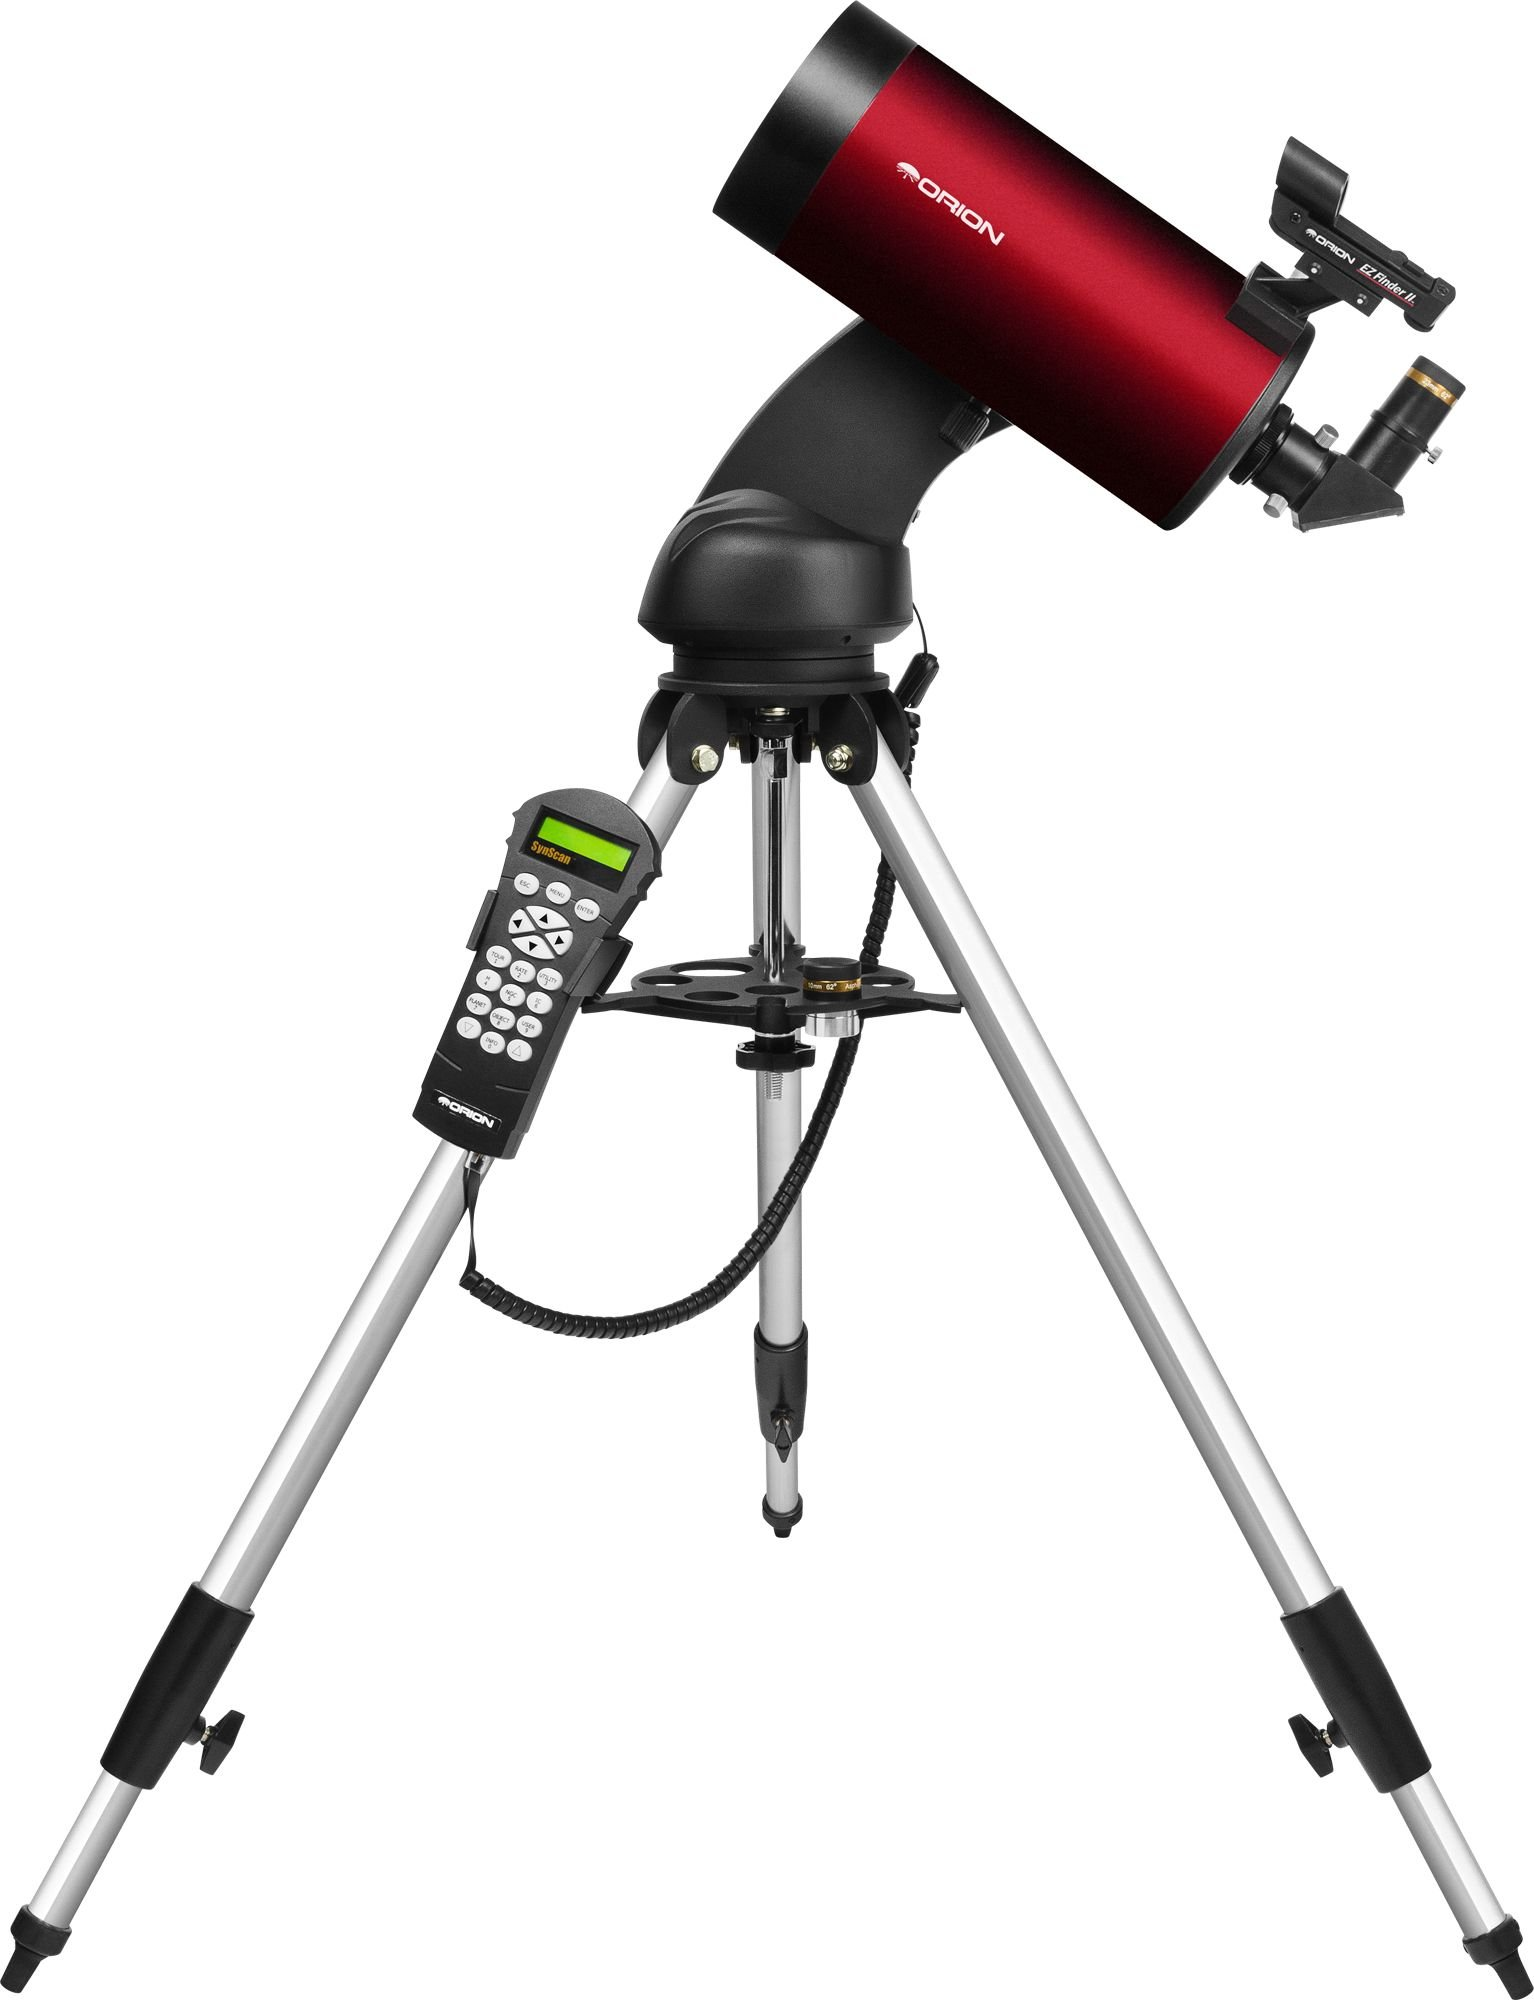 Orion 13163 StarSeeker IV 127mm GoTo Mak-Cass Telescope (Burgundy) by Orion